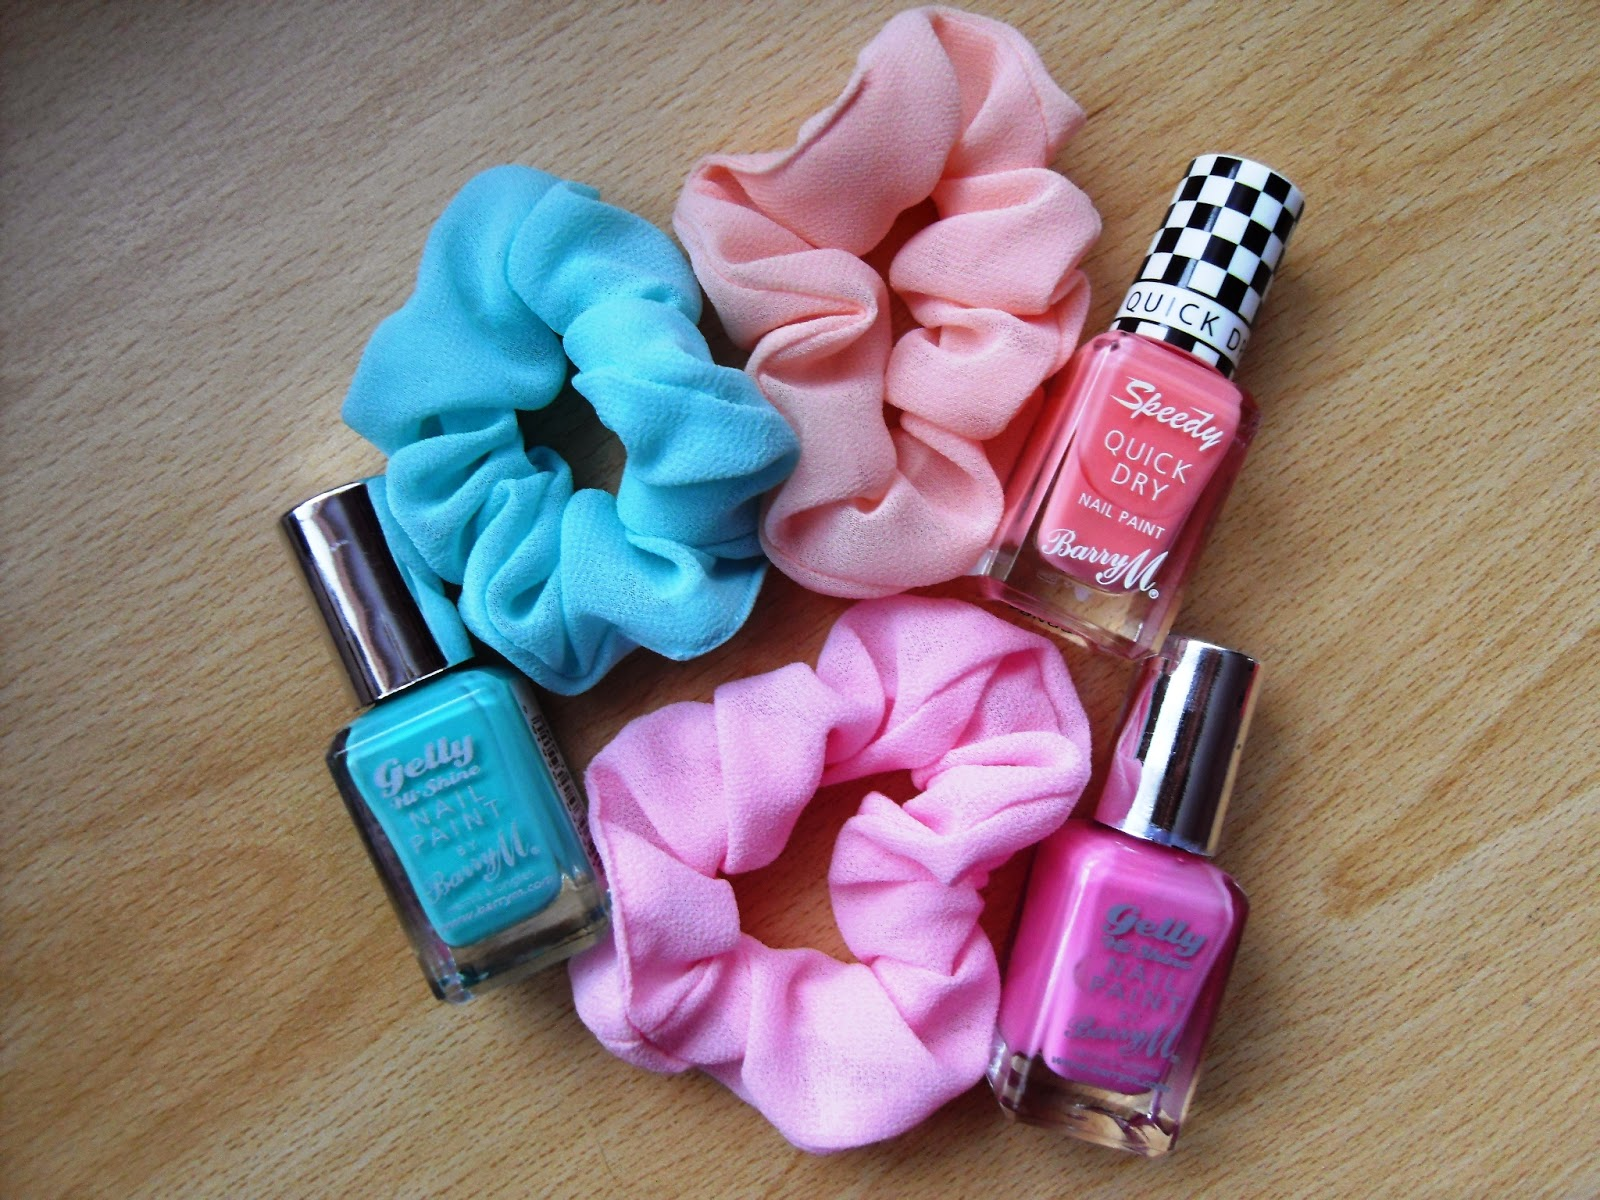 scuni hair bands, barry m matching nail polishes